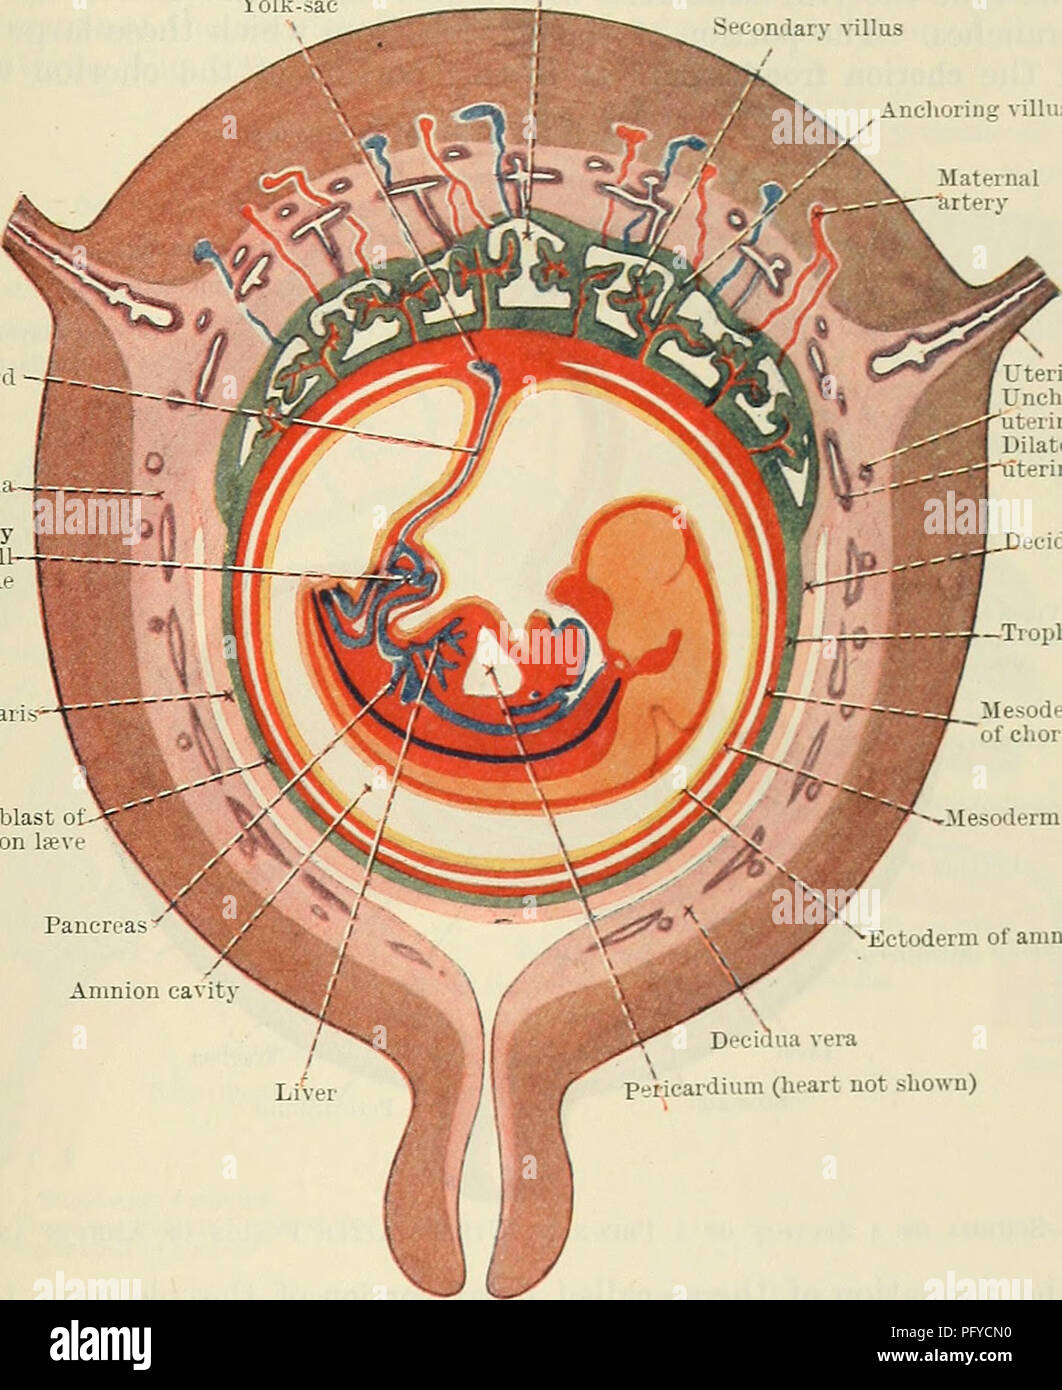 . Cunningham's Text-book of anatomy. Anatomy. THE PLACENTA. 59 by a layer of cellular trophoblast, Langhan's layer, which lies next the mesoderm, and a layer of Plasmodium external to the cellular layer. The proximal end of .each villus is continuous with the chorion plate of the intervillous spaces, formed by the chorion, and the distal extremity is connected by the plasmodial basal layer of the trophoblast, which forms the outer boundary of the intervillous spaces and which is fused with the maternal decidual tissue. After a time branches are projected from the sides of the secondary villi i Stock Photo